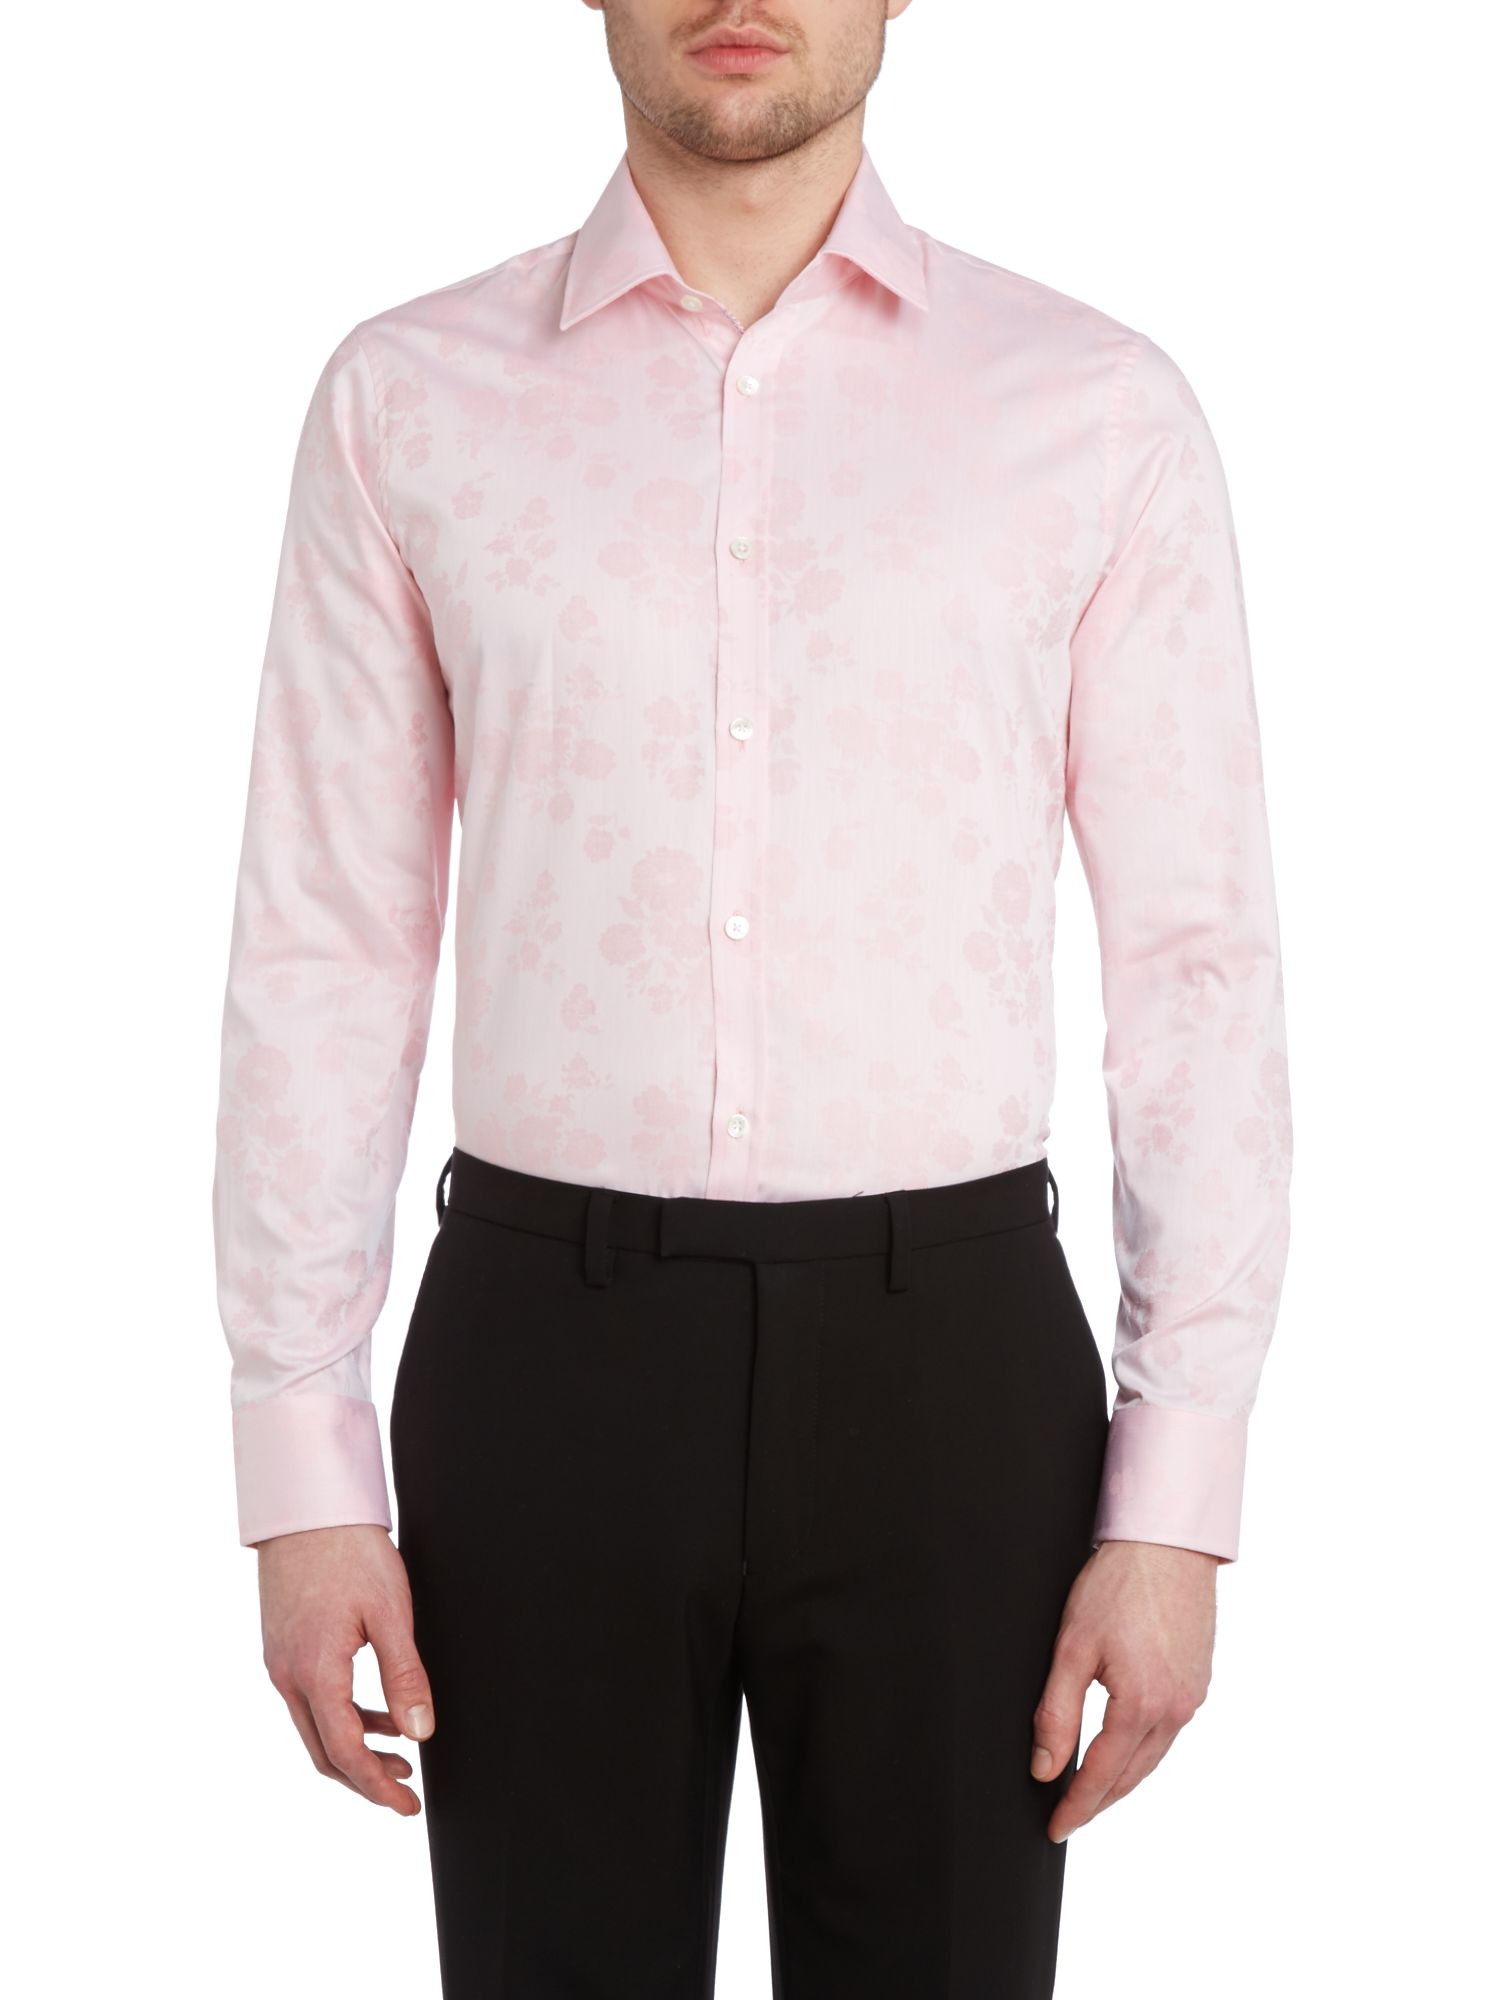 Biberia regular fit archive floral jaquard shirt